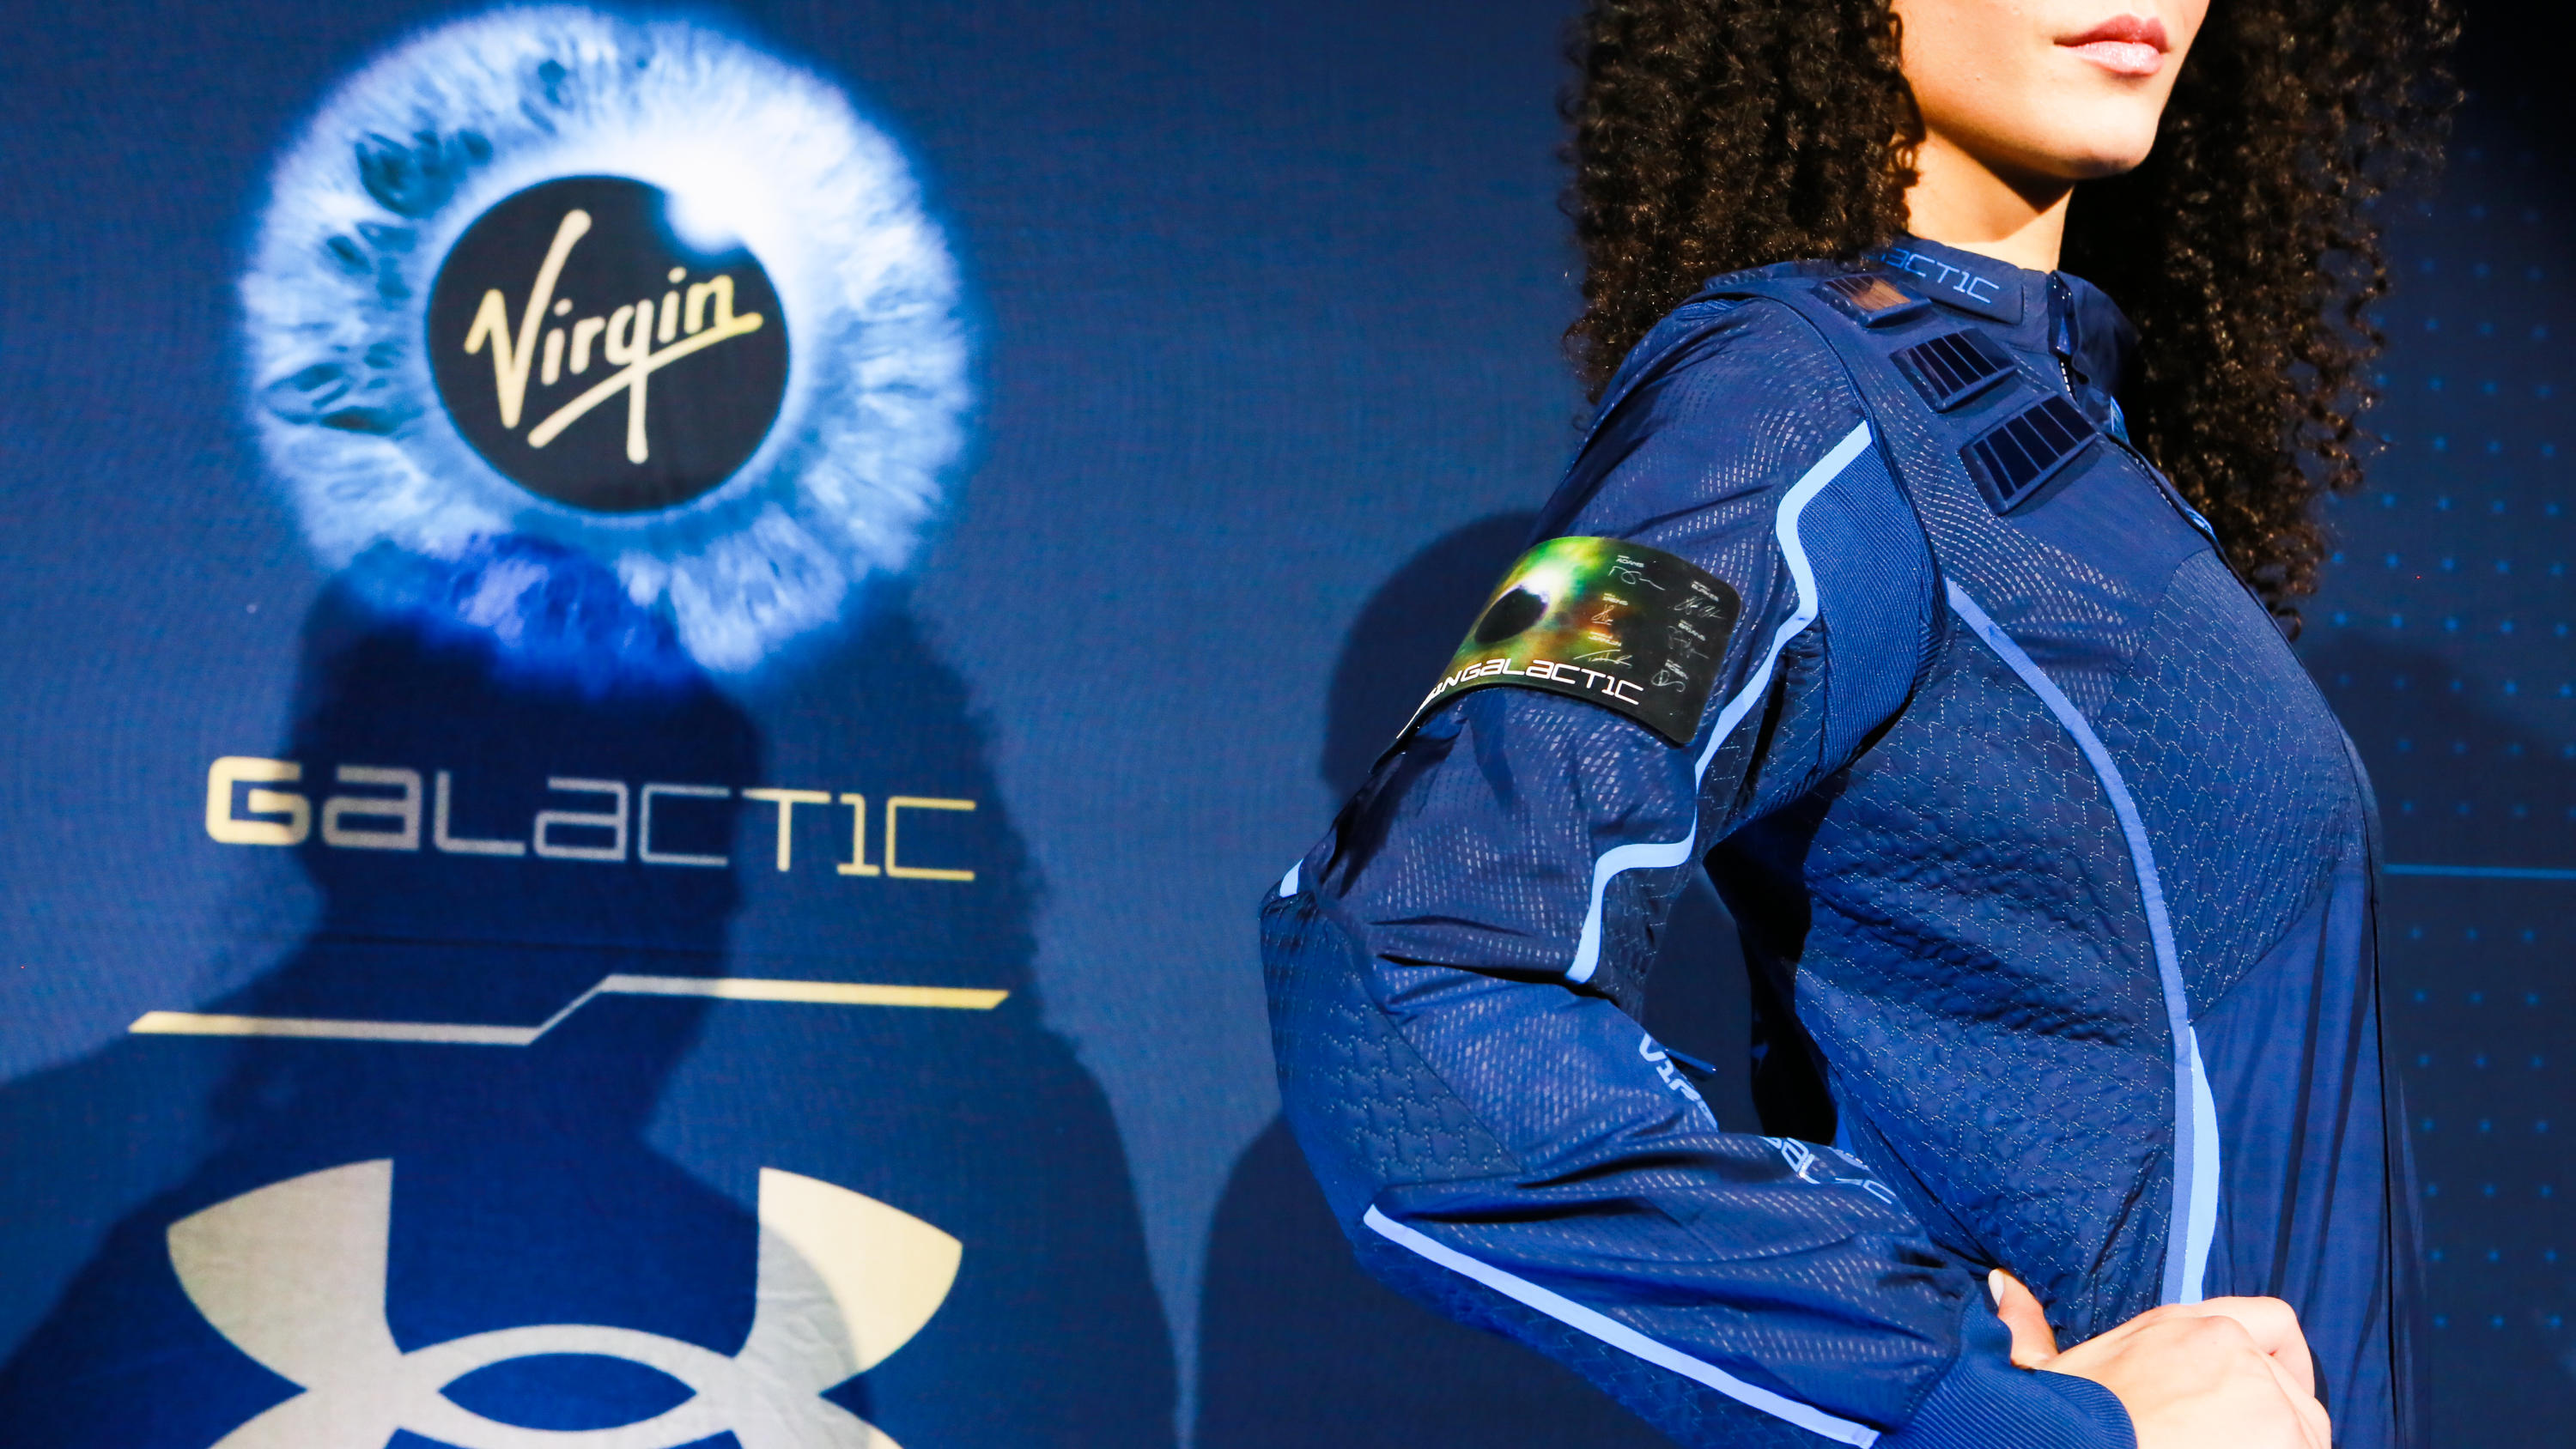 Virgin Galactic Under Armour commercial space flight suits announced